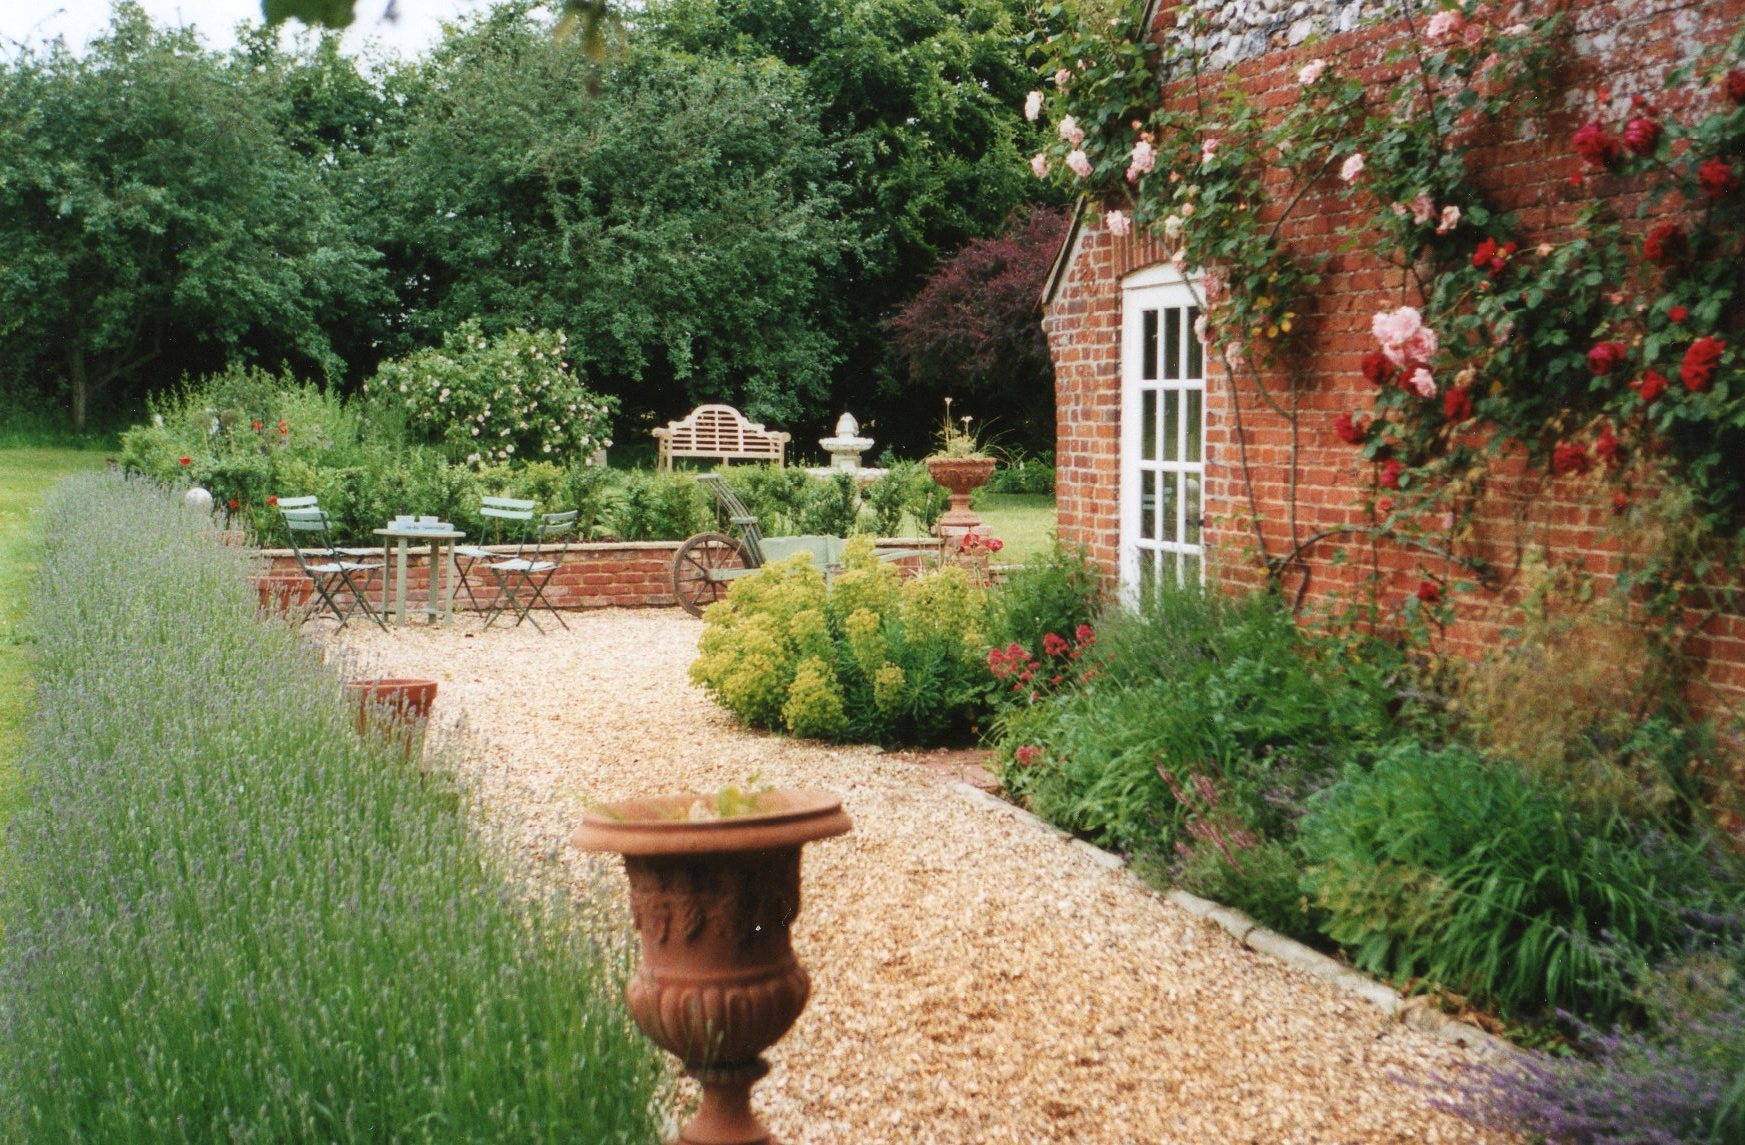 Garden Design Garden Design with Country garden ideas on